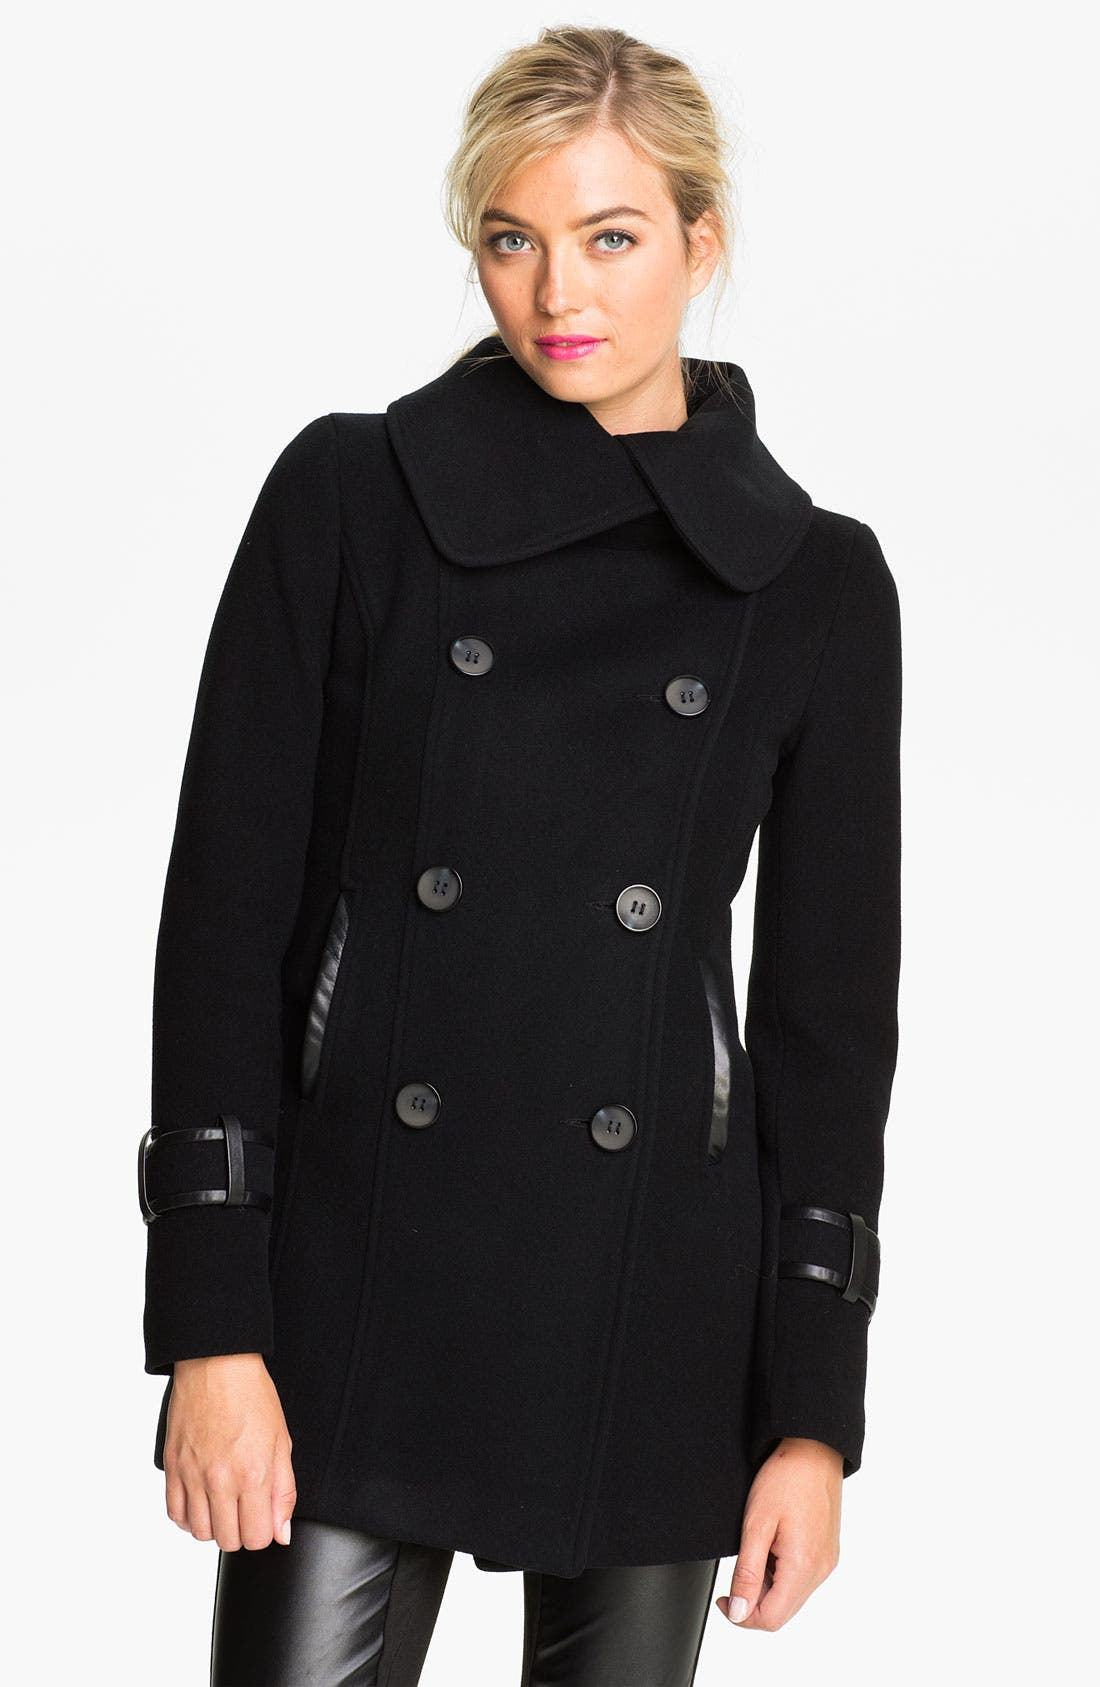 Alternate Image 1 Selected - Mackage 'Zyta' Peacoat